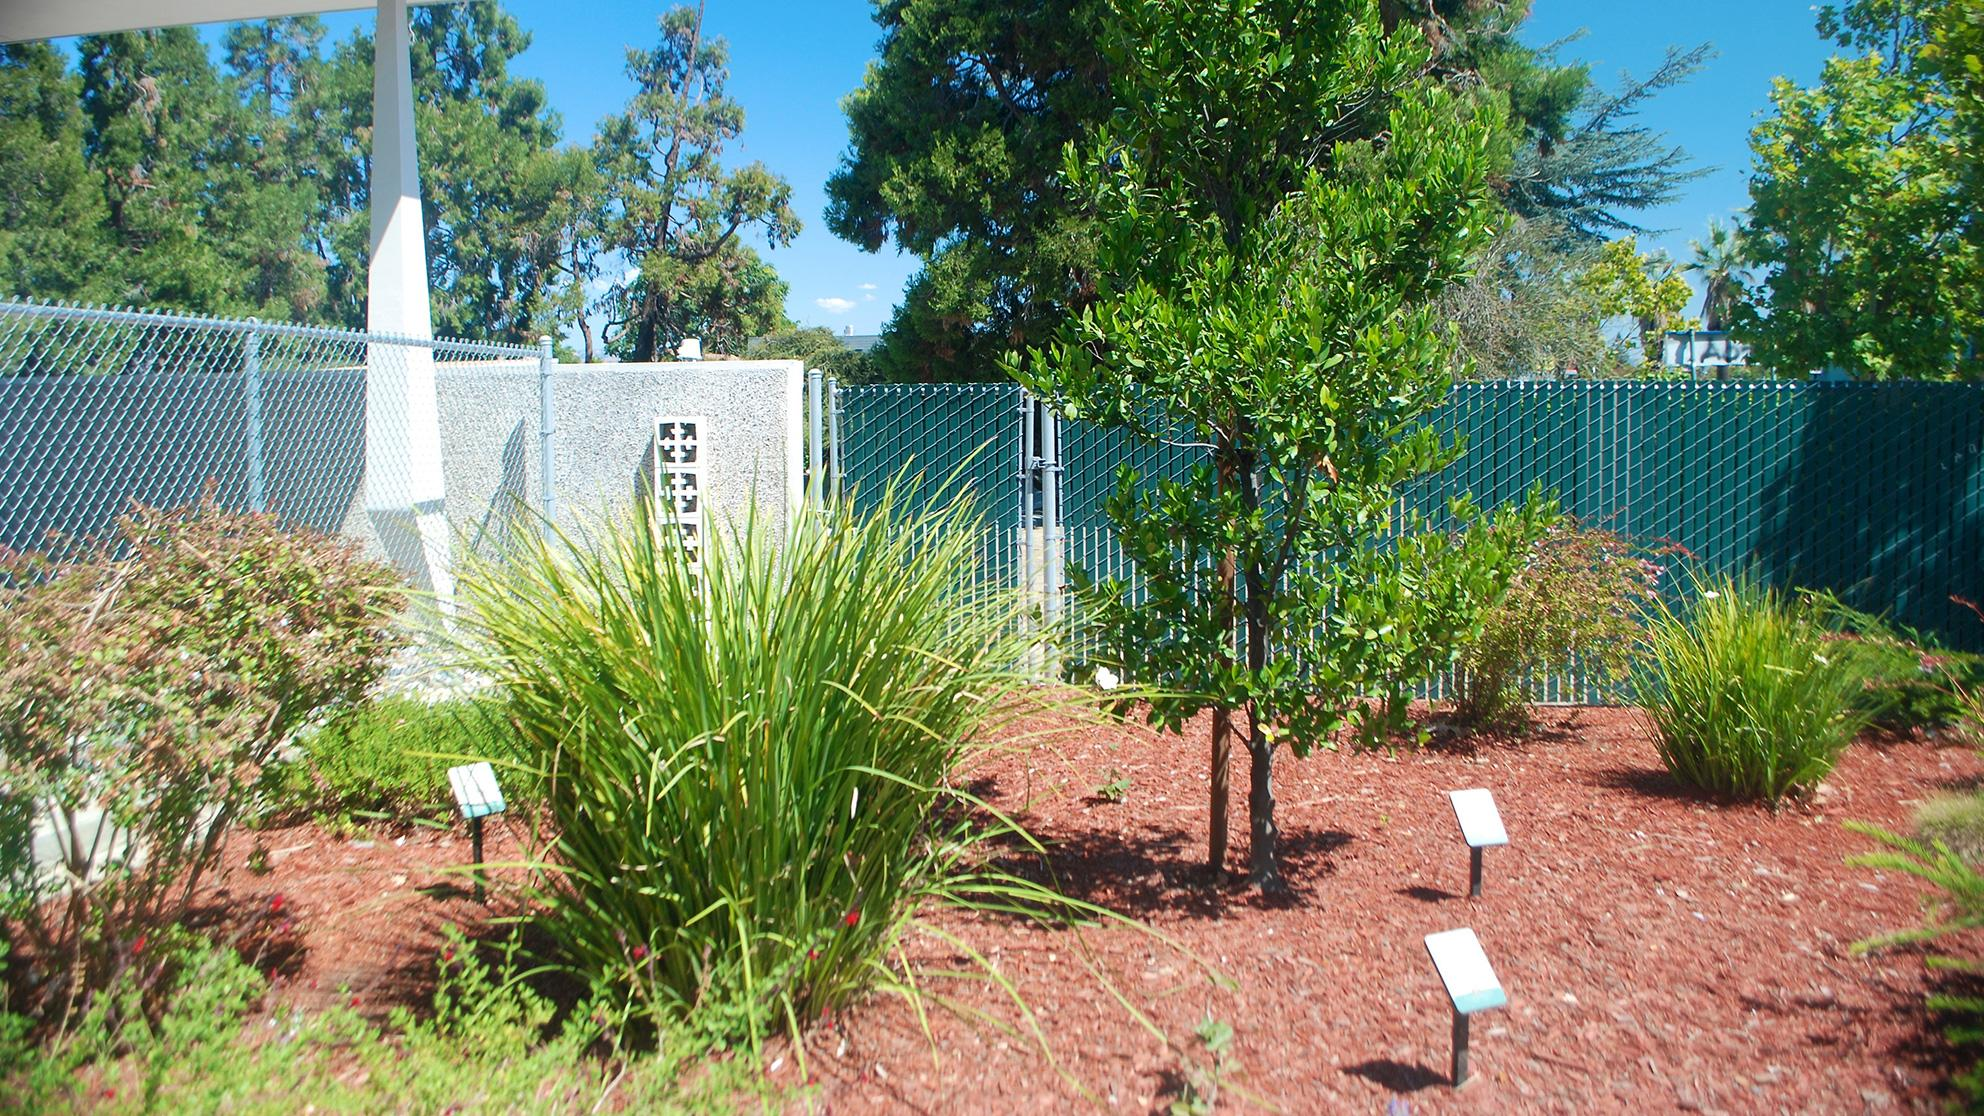 Image Of The San Jose Water Demonstration Garden